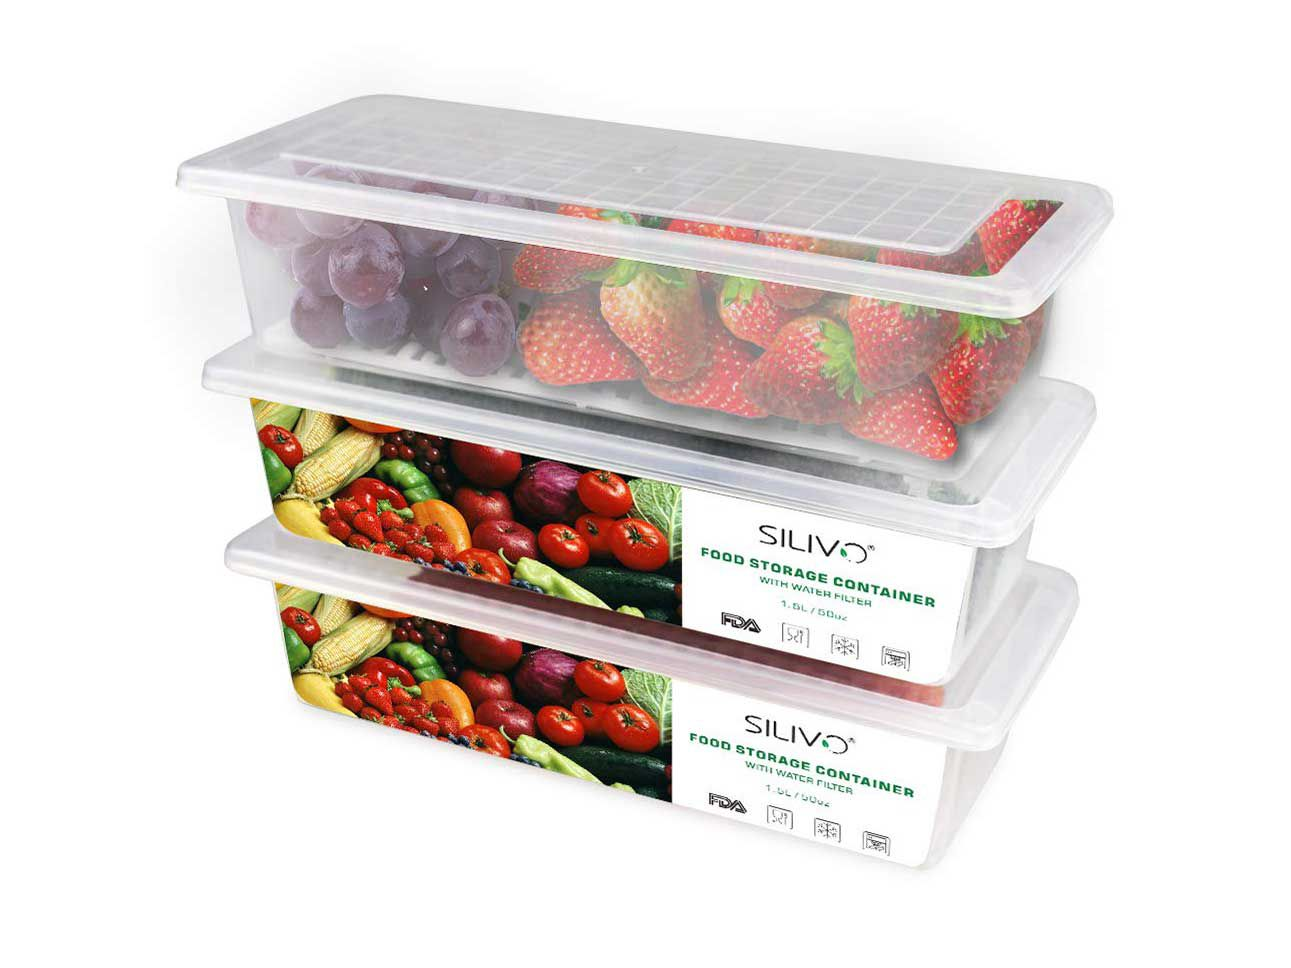 Removable drain plates keep moisture away from produce, which can help slow down spoilage.